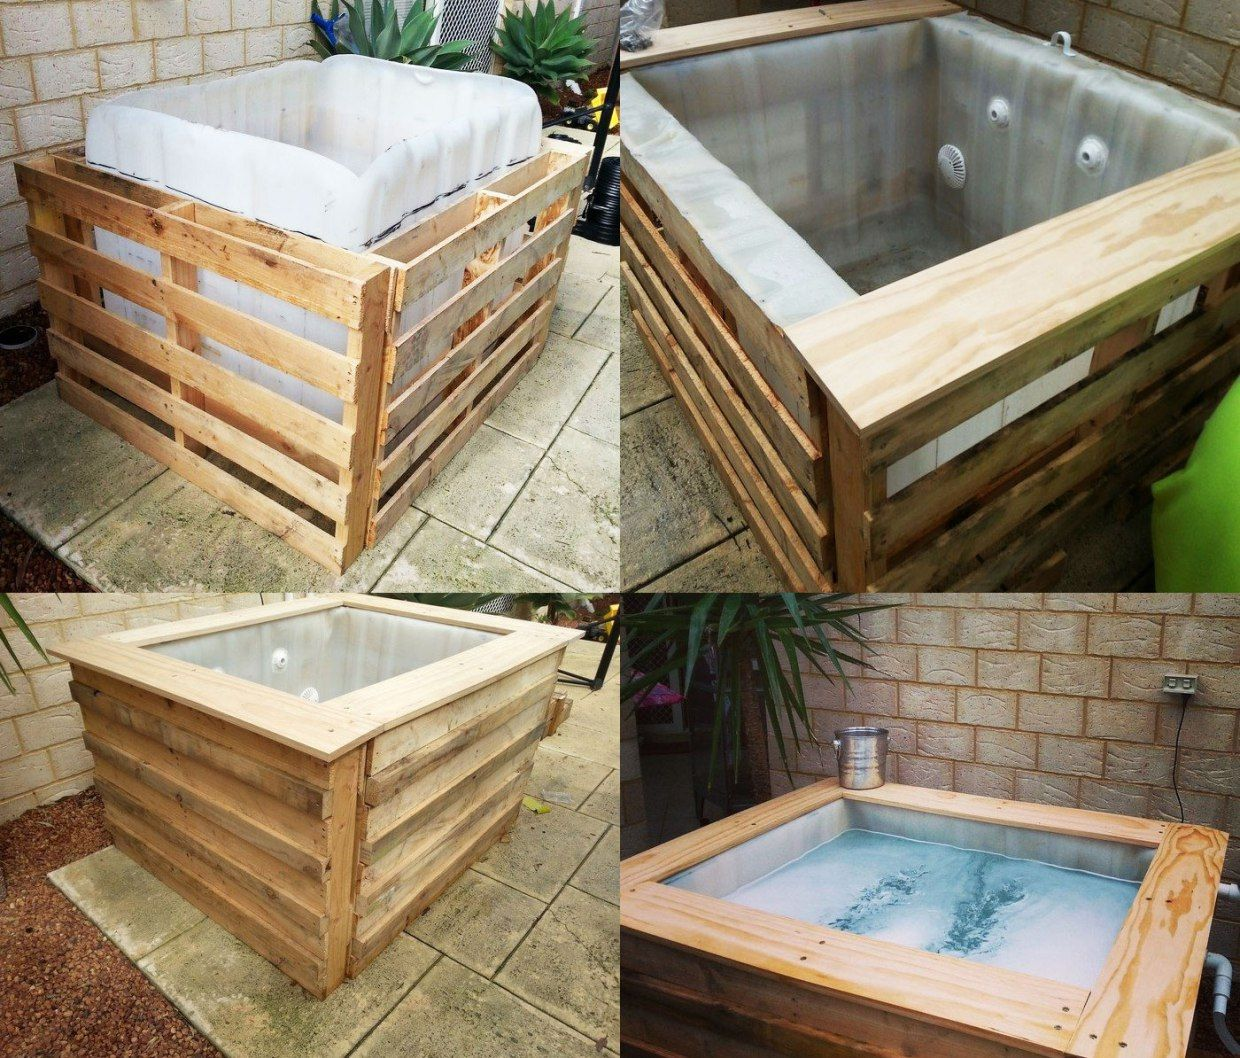 Pool Selber Bauen Container Diy Homemade Swimming Pool Gallery Hot Tub Pinterest